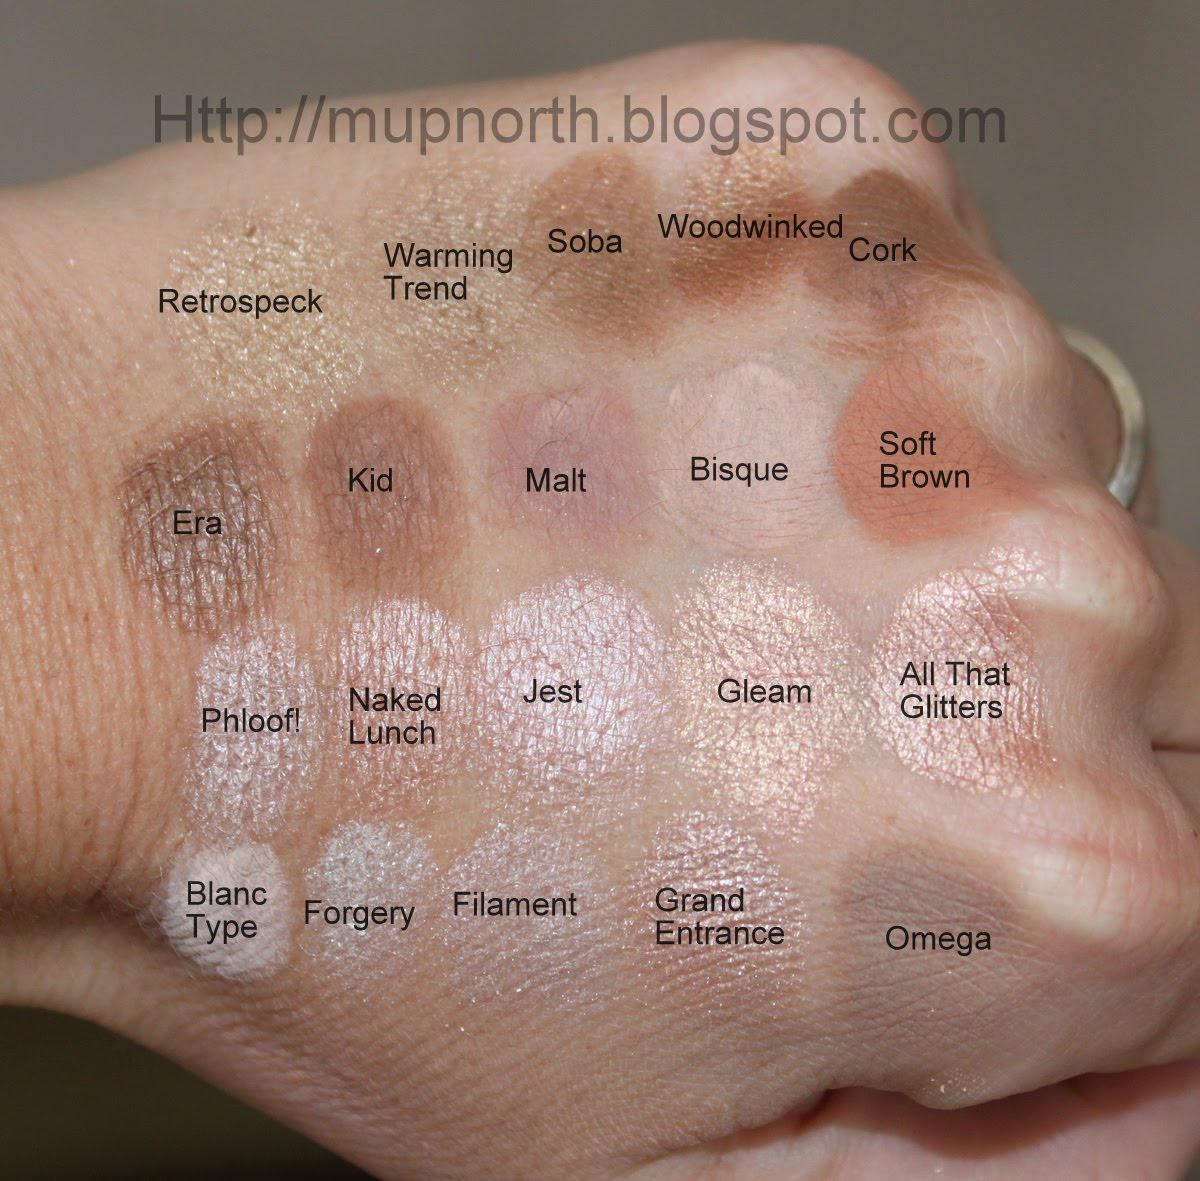 Mac Eyeshadow Swatches: Light Neutrals